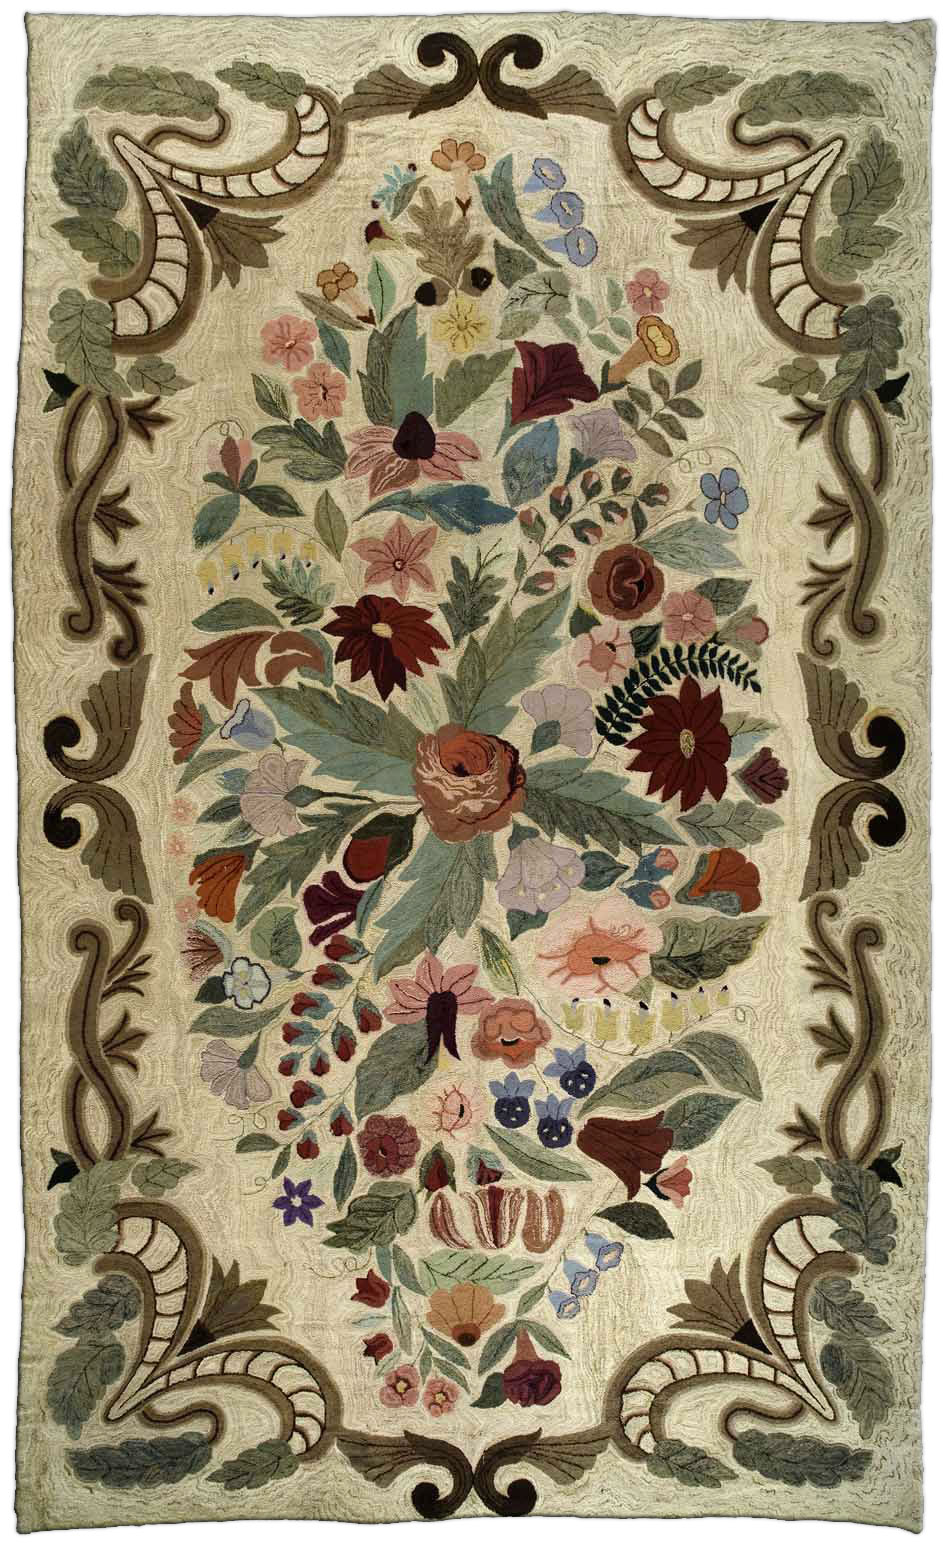 Hooked Rugs Rag Carpets For Sale Large Wool Floral Rug